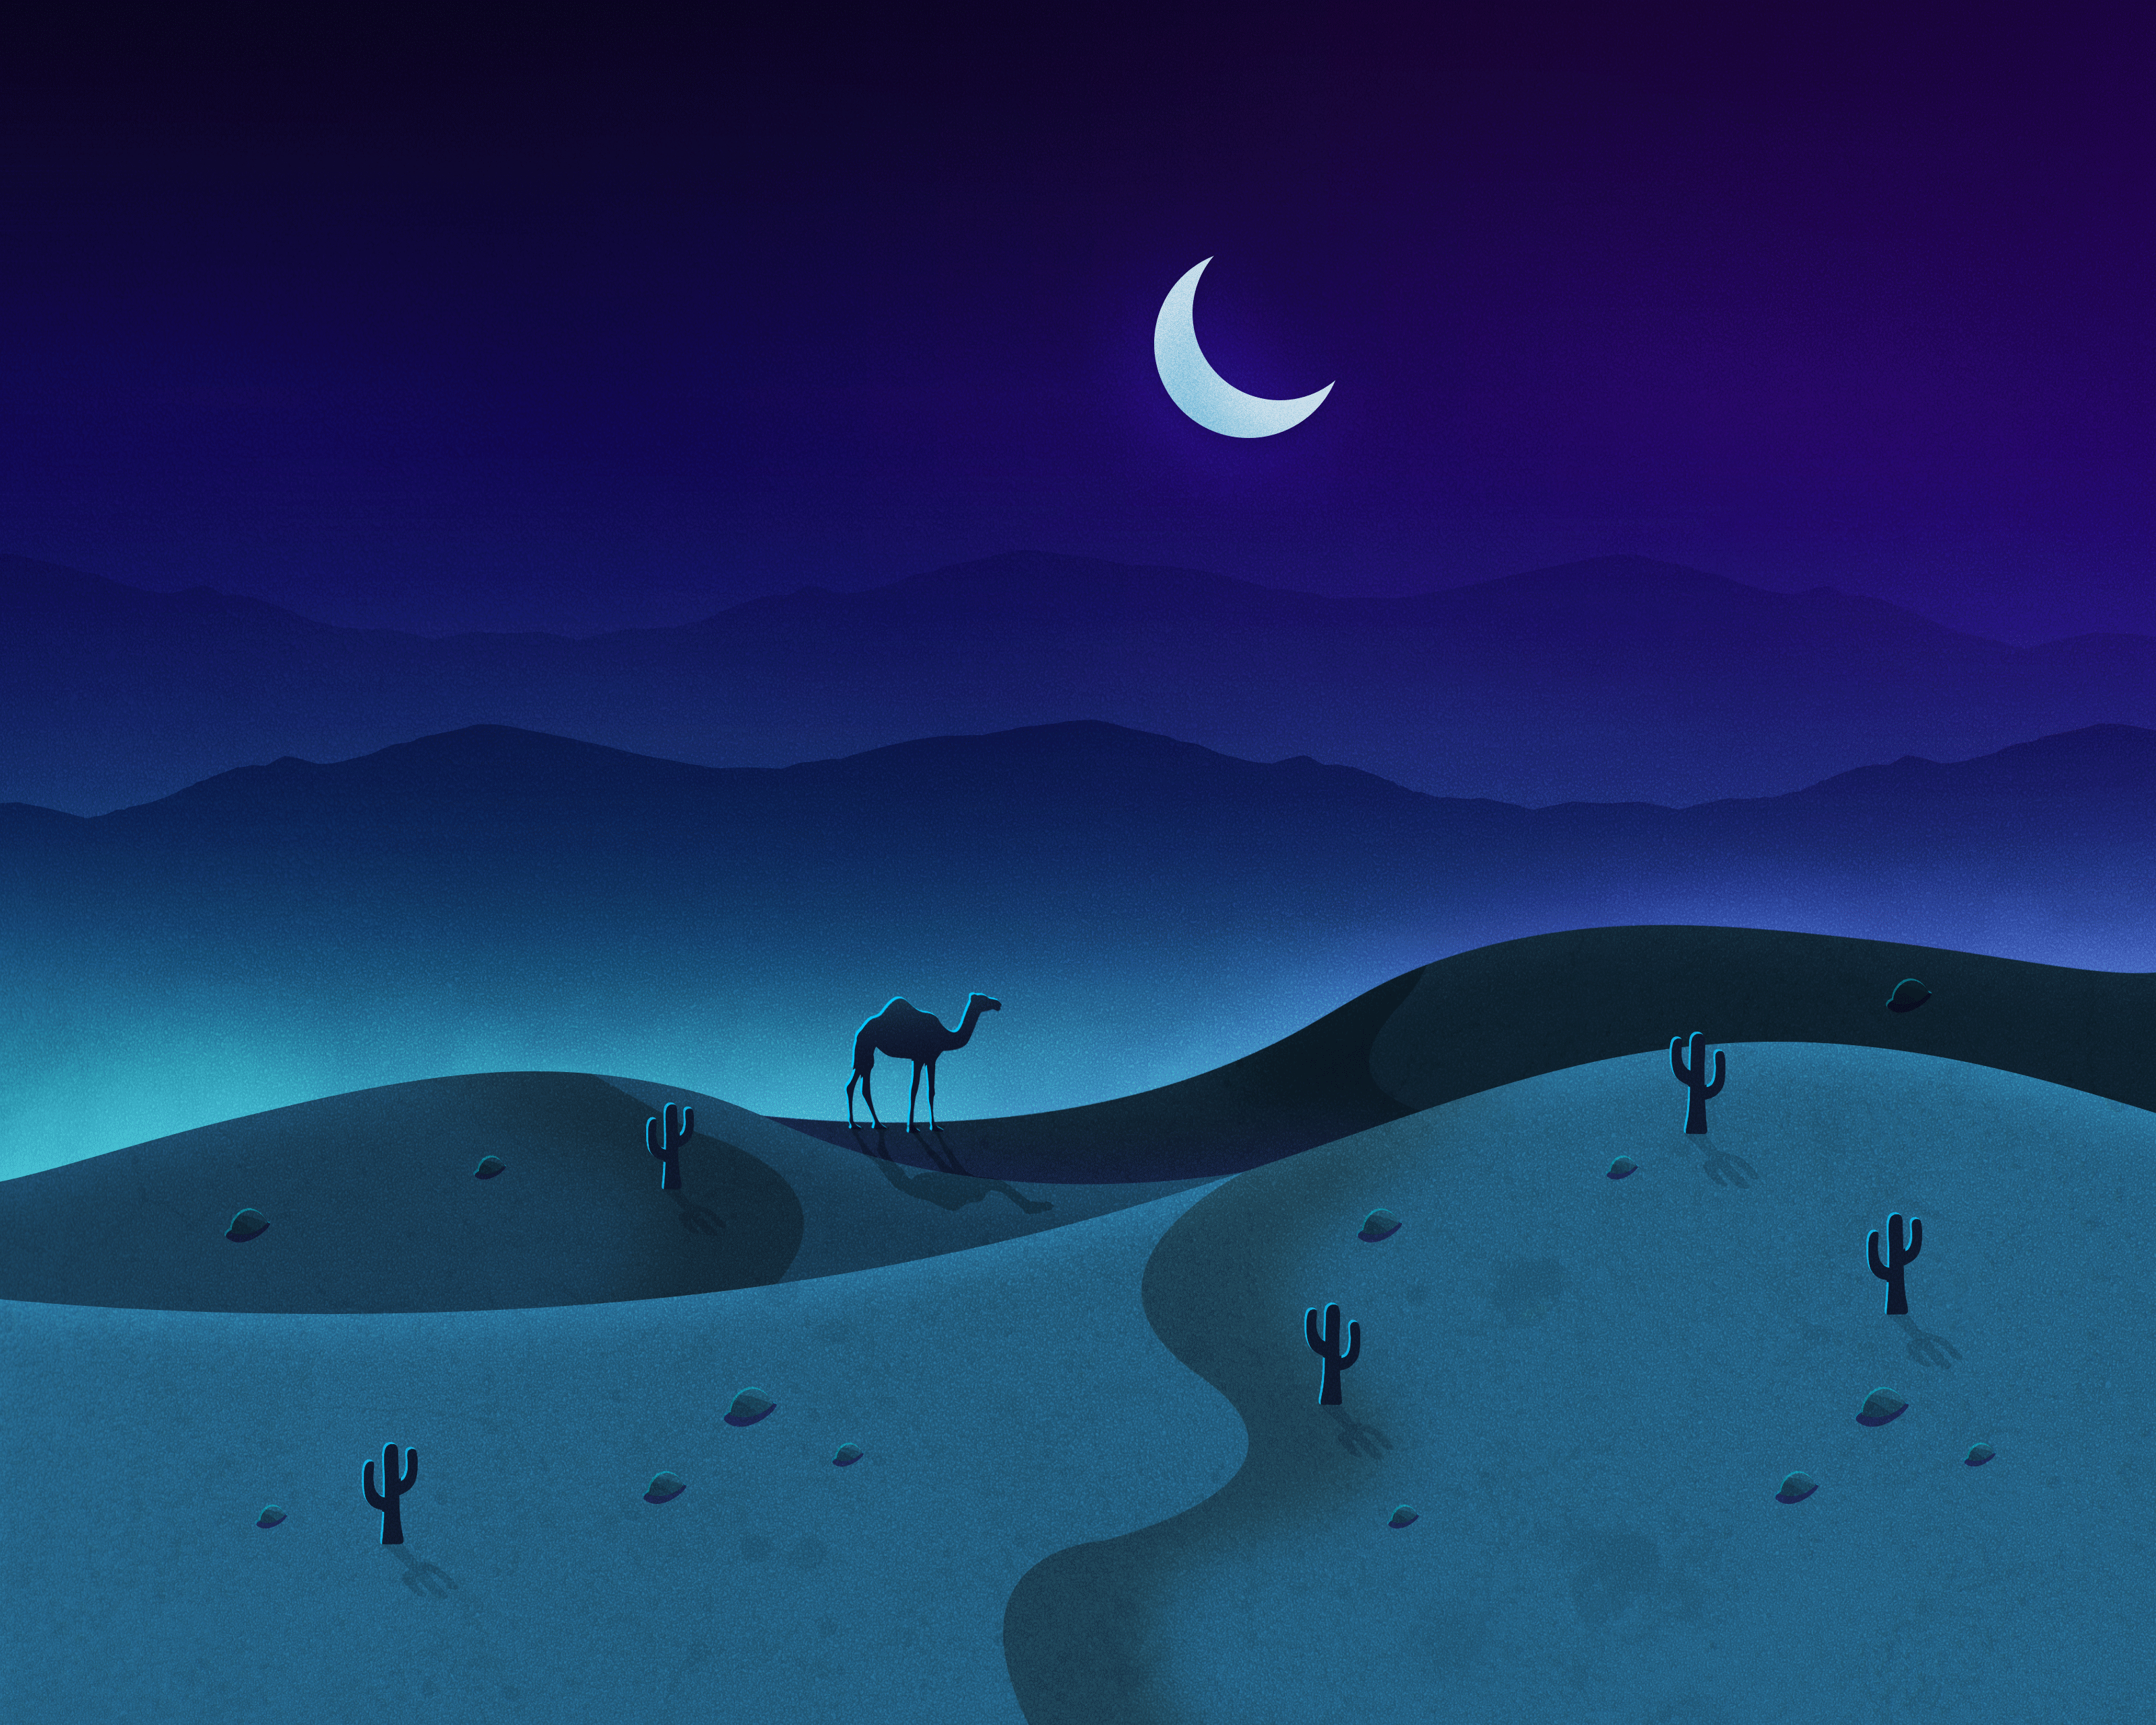 Wallpaper wednesday material landscapes part 2 sammobile for Material design space